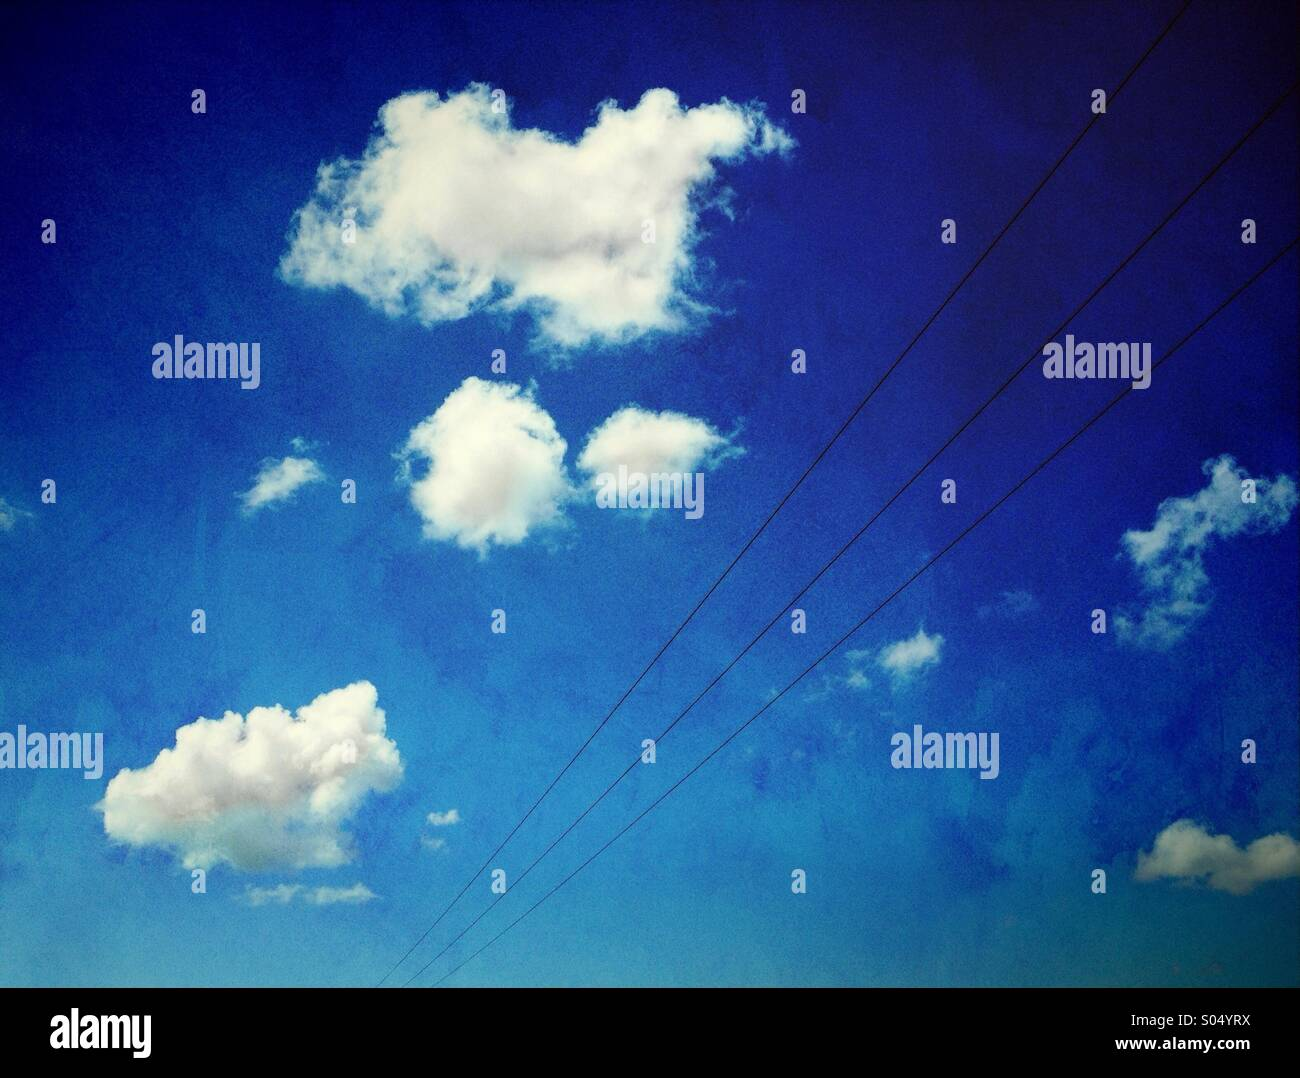 Pylon wires and white clouds against blue sky - Stock Image